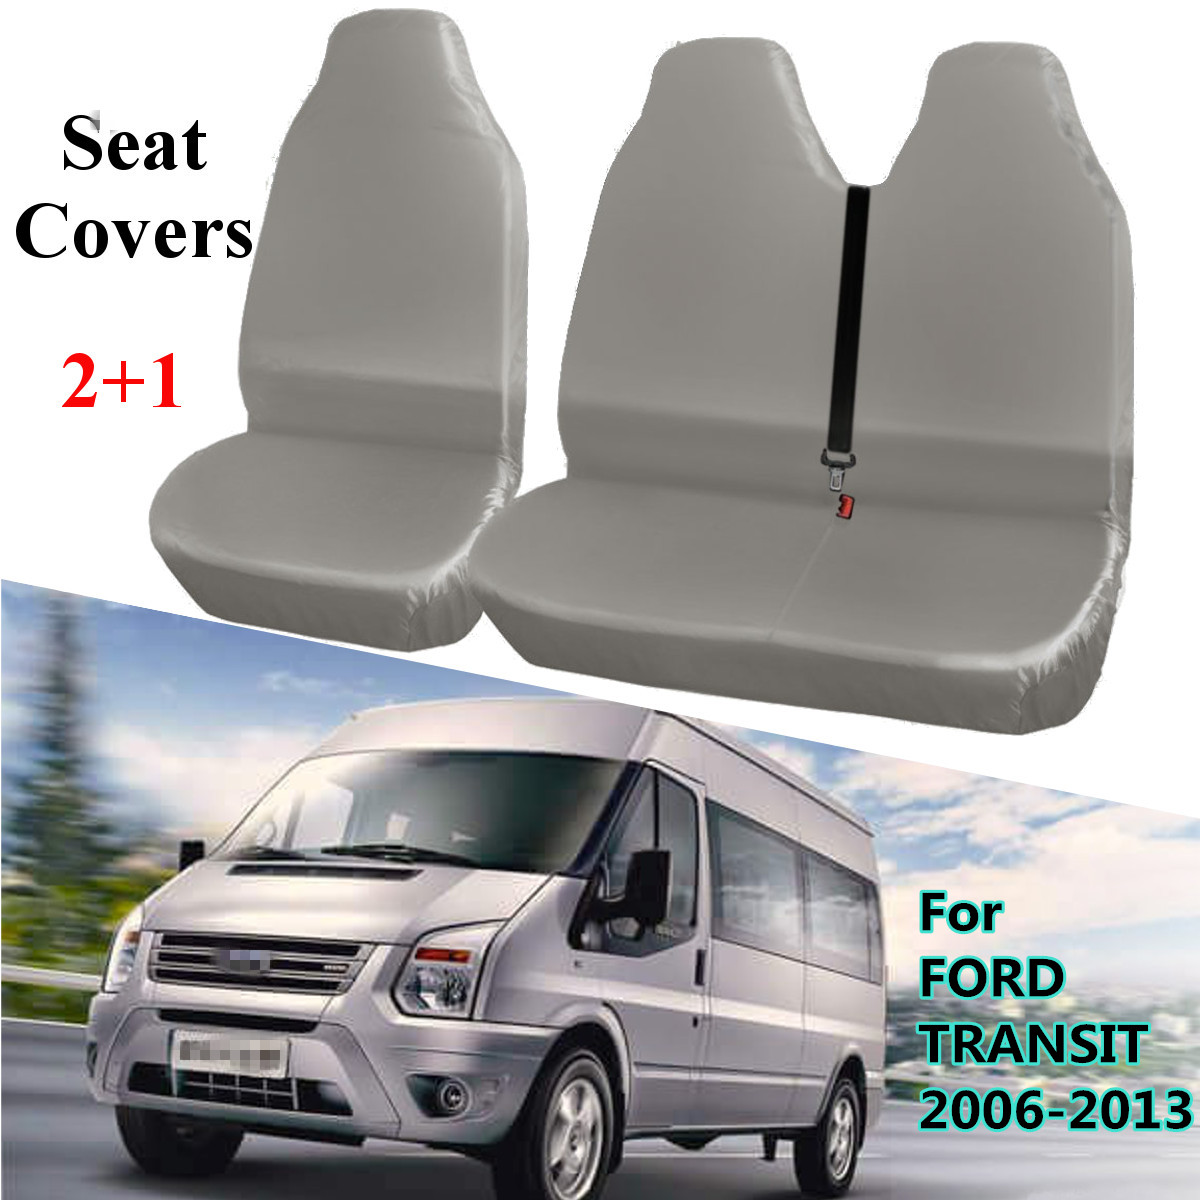 Automobiles-Seat-Covers Protector Ford Transit Universal Waterproof Gray Van 3 2--1